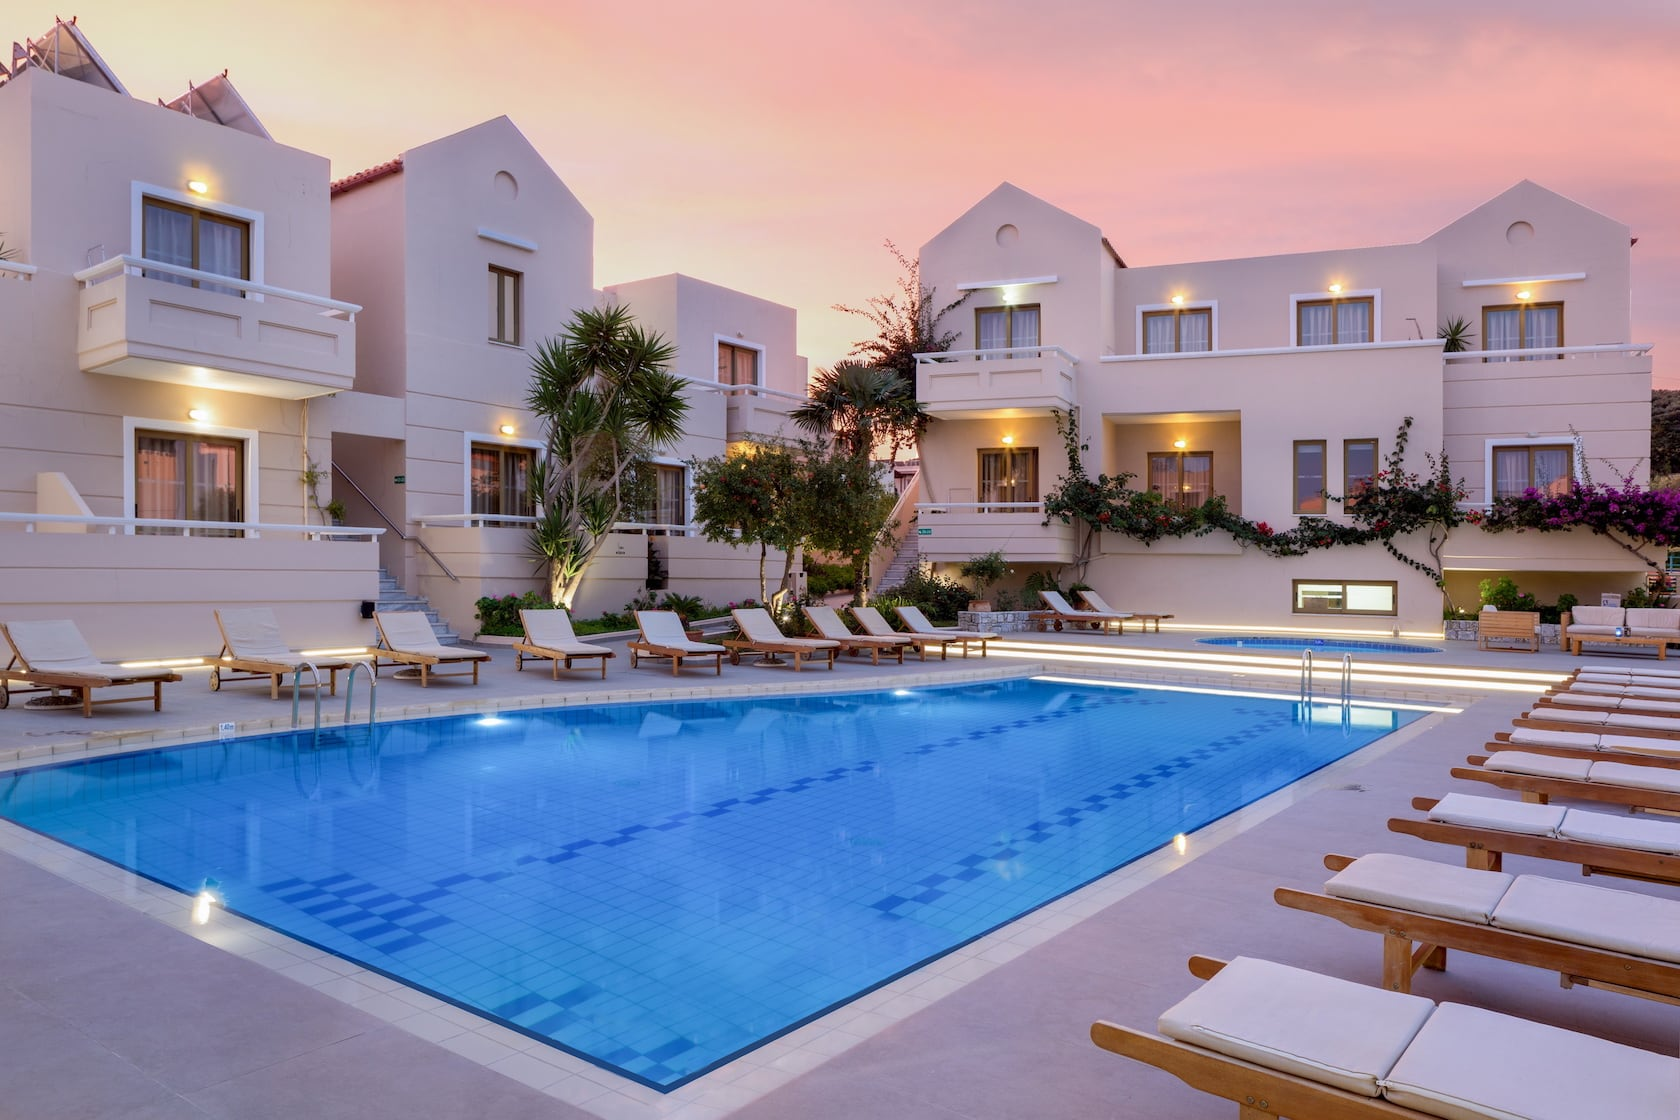 Dusk at the pool area in Oscar Suites & Village in Agia Marina-Platanias in Chania.